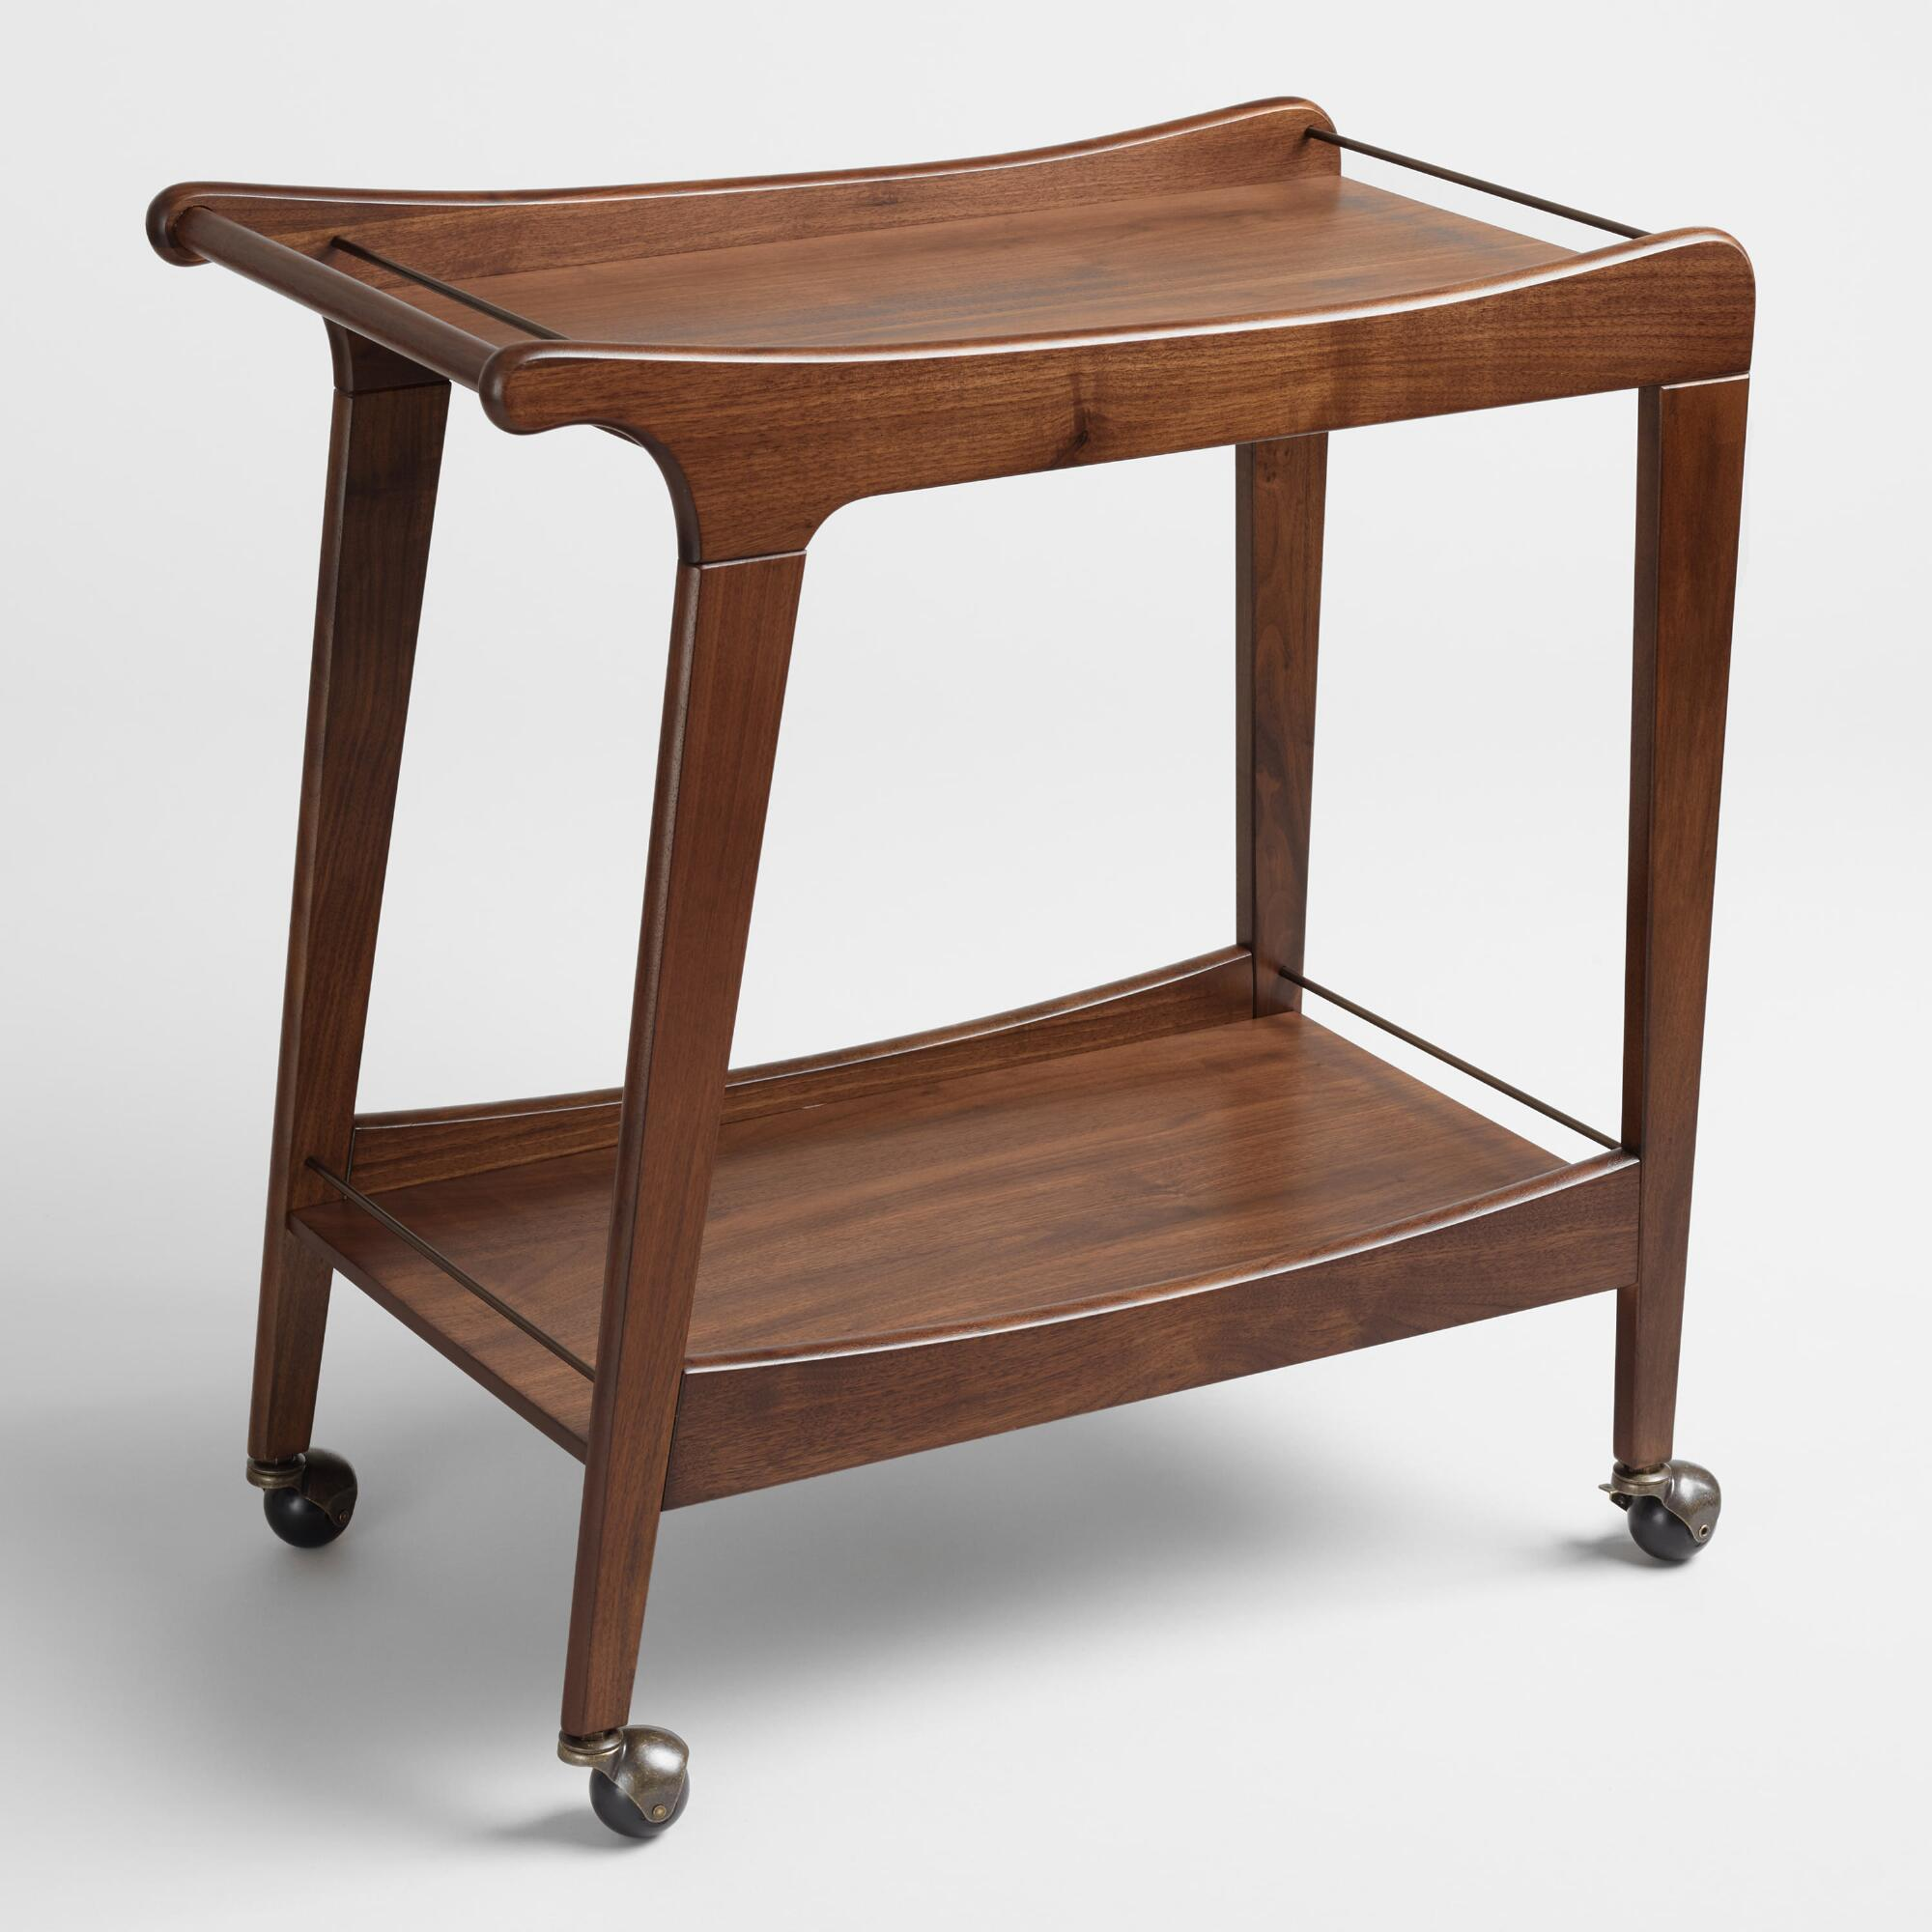 Small space furniture collection world market walnut mid century bar cart geotapseo Gallery